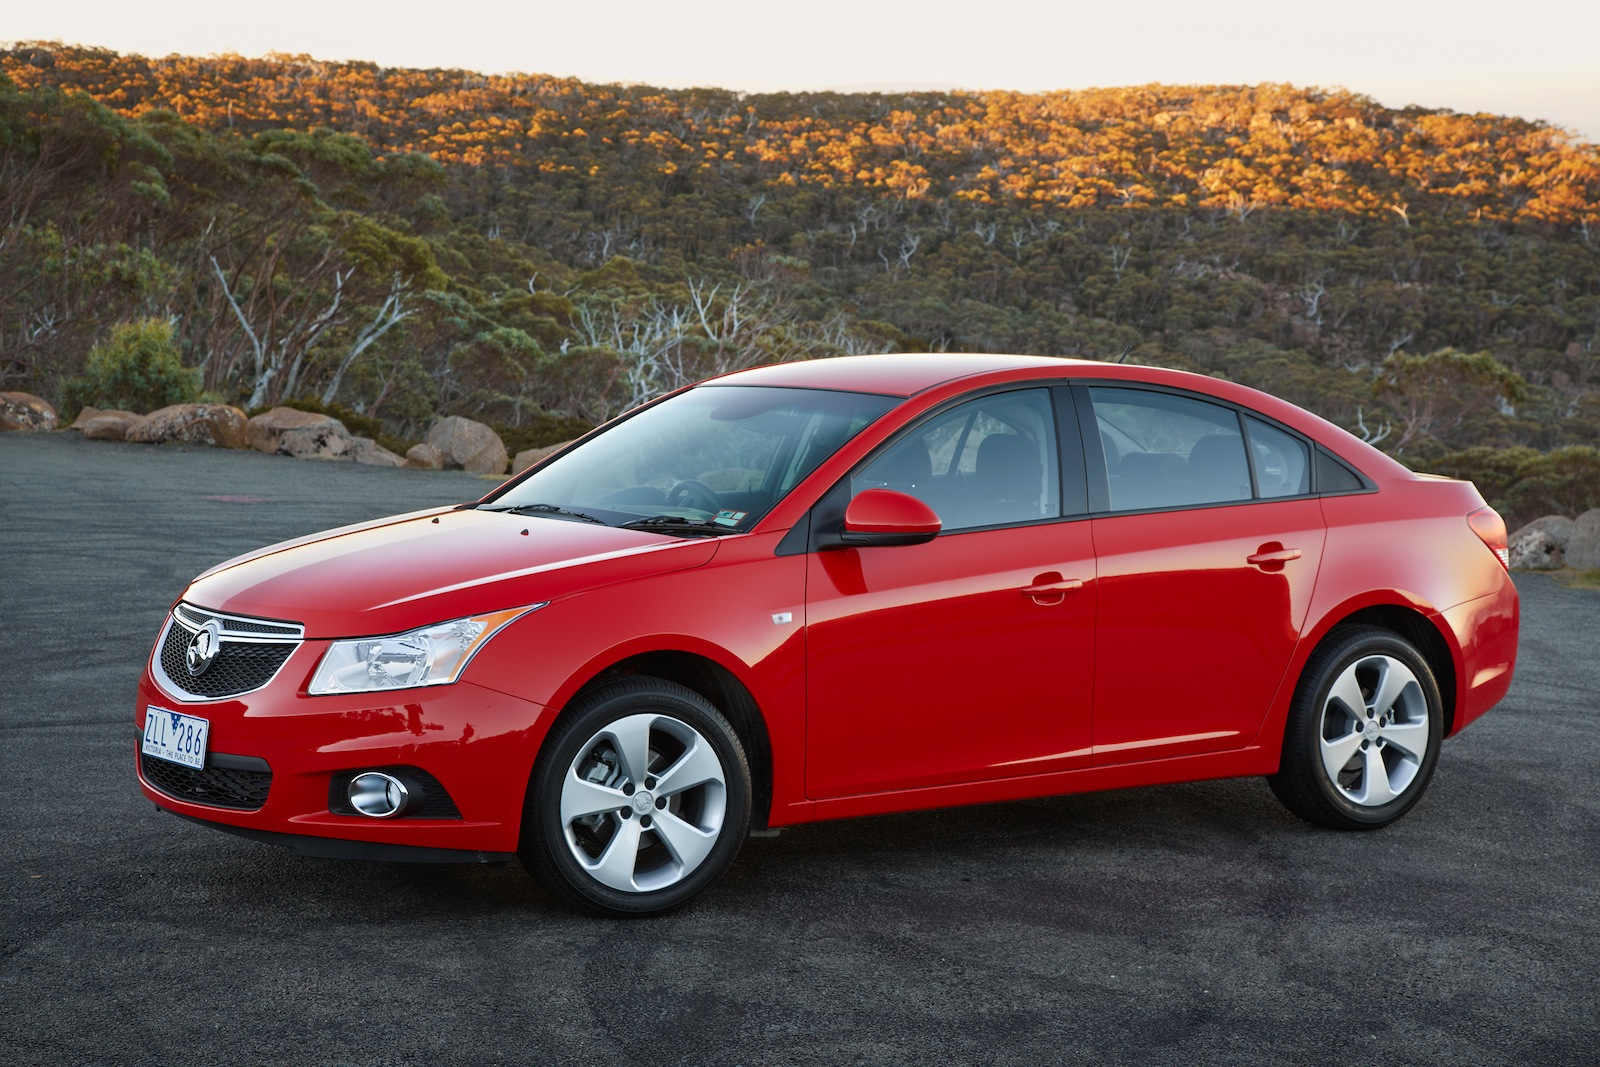 2013 holden cruze pictures information and specs auto. Black Bedroom Furniture Sets. Home Design Ideas